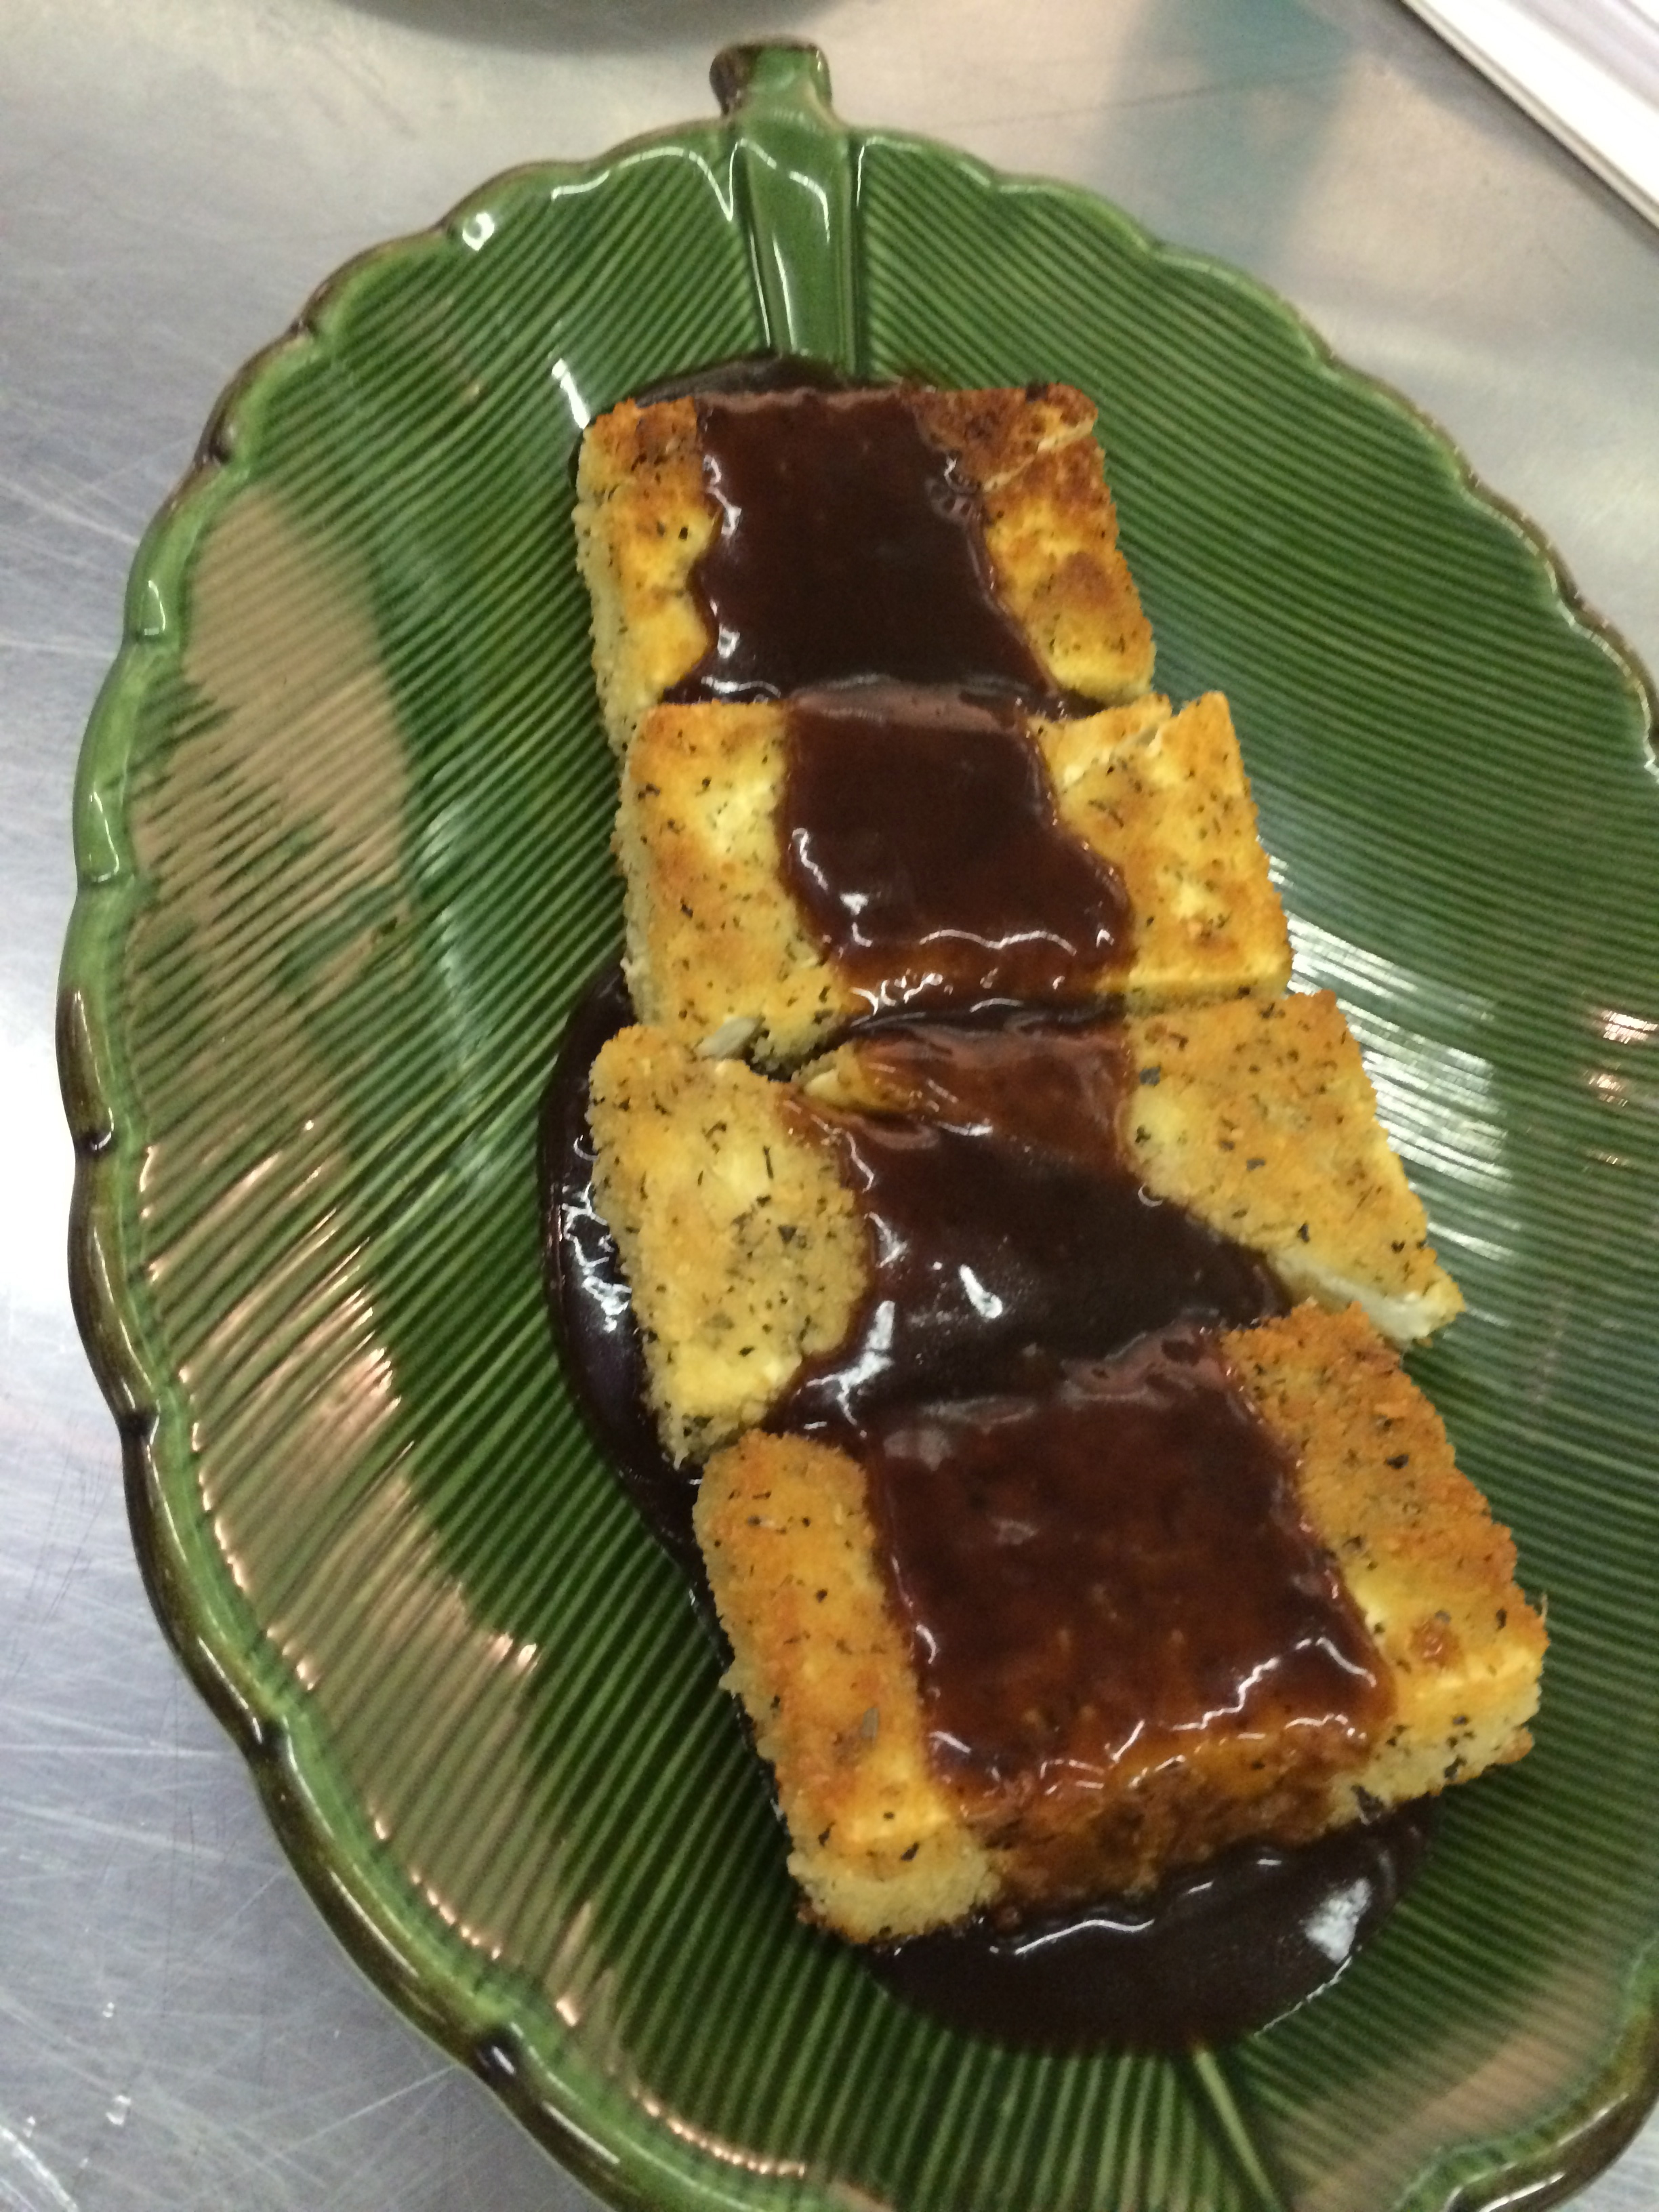 Pan Fried Tofu with Vegetarian Espagnole Sauce